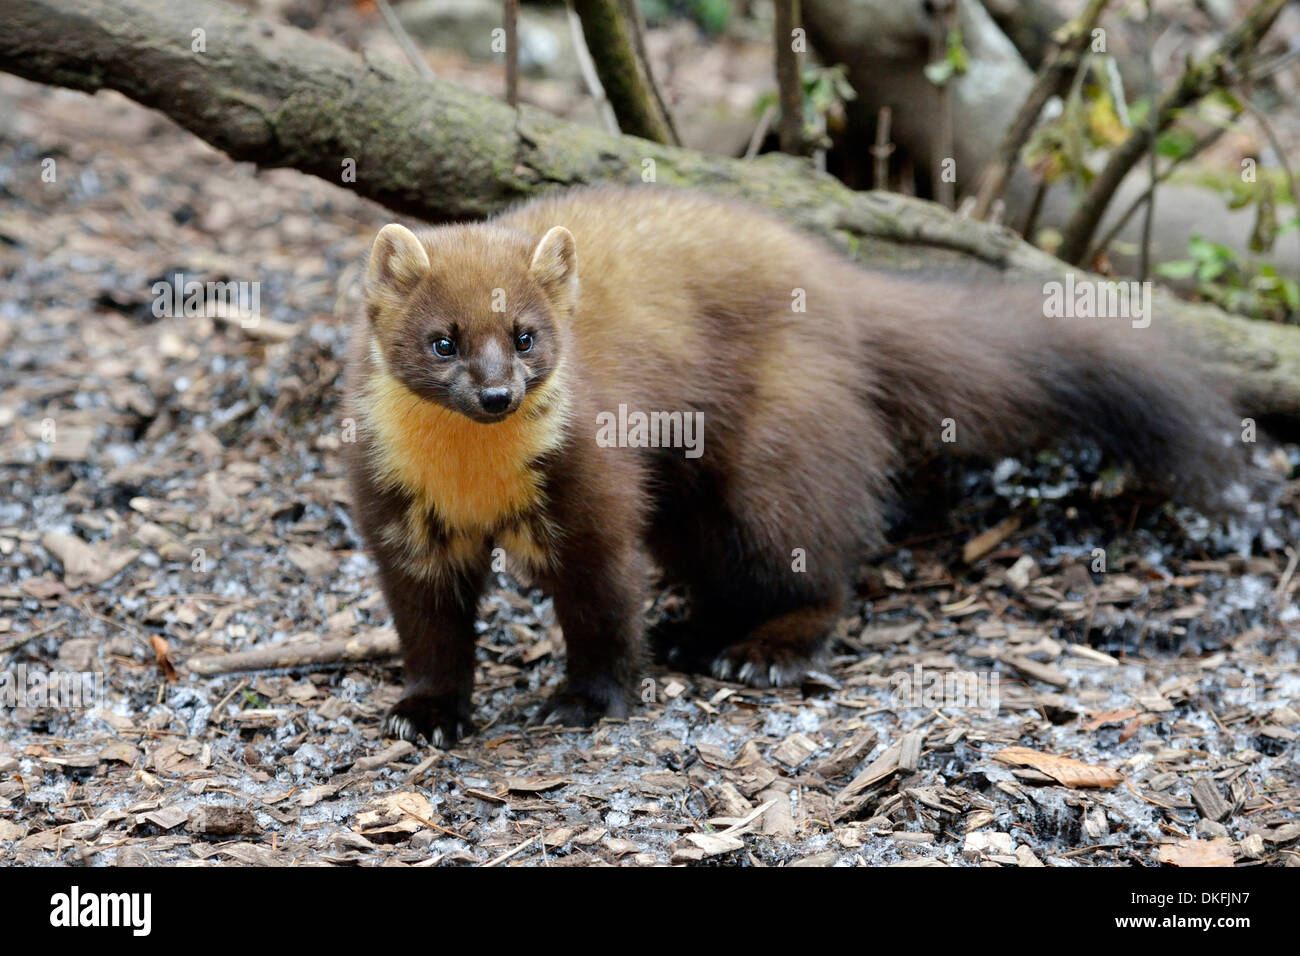 Pine Marten (Martes martes), zoo, Arth Goldau, Switzerland Stock Photo